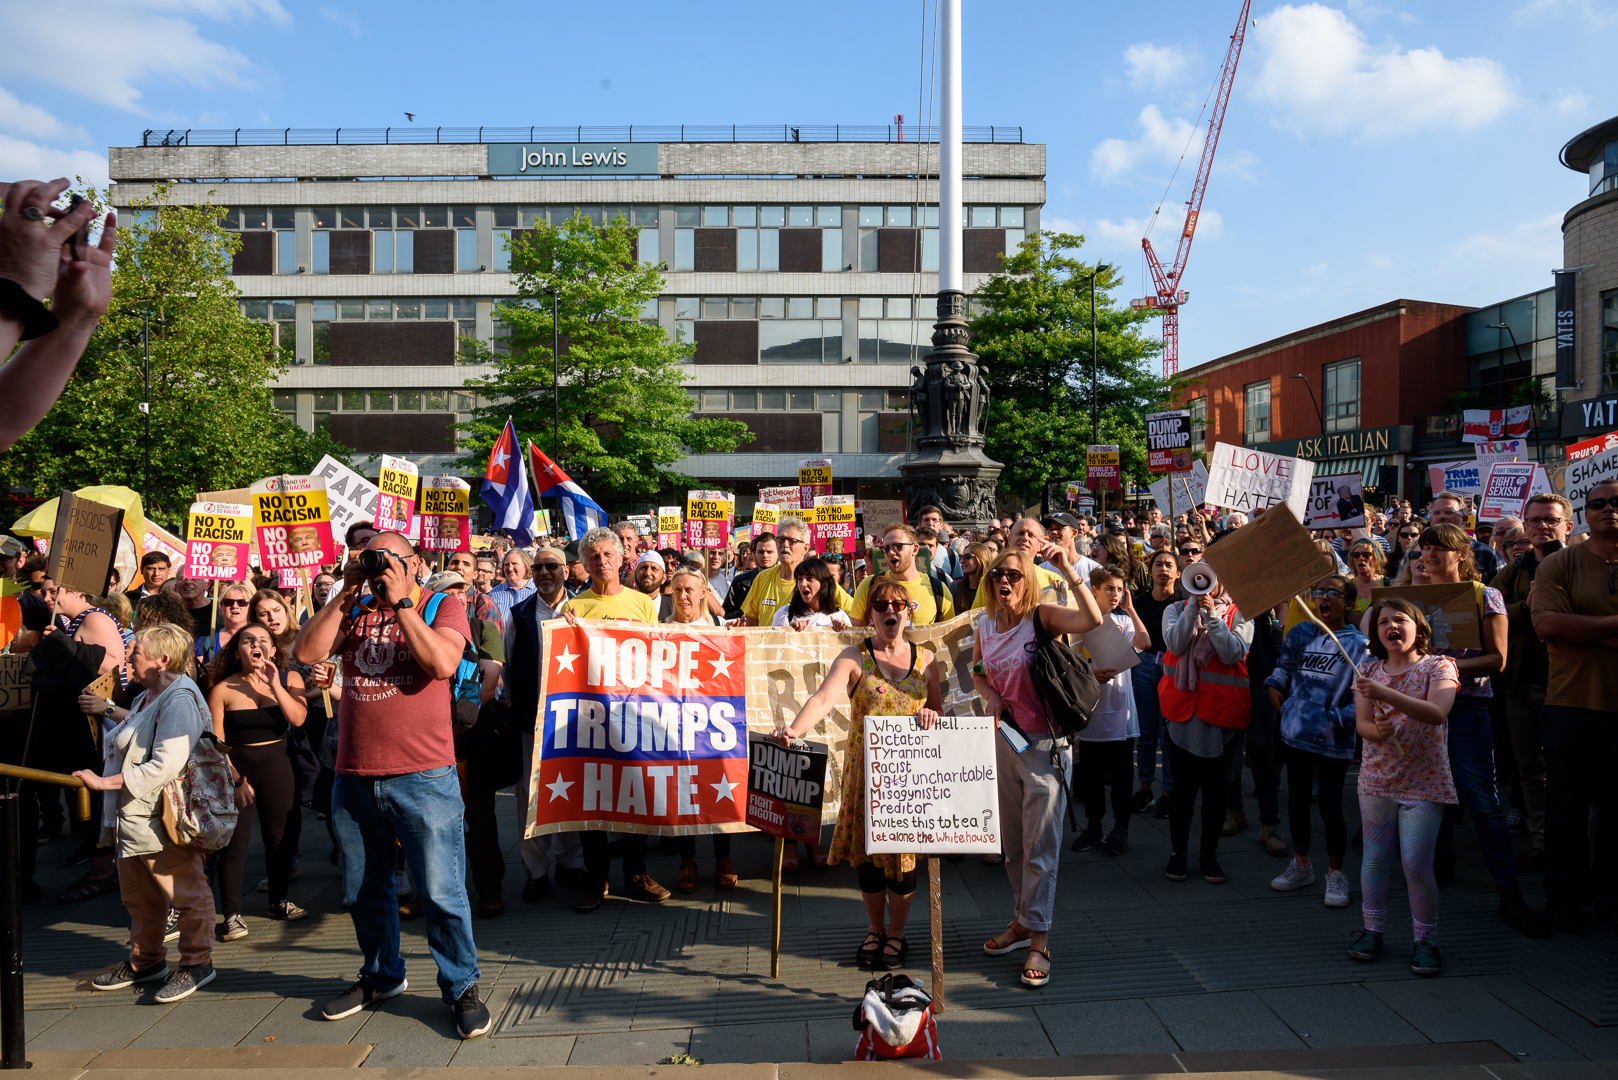 Sheffield Anti-Trump rally July 2018 Blog03.jpg